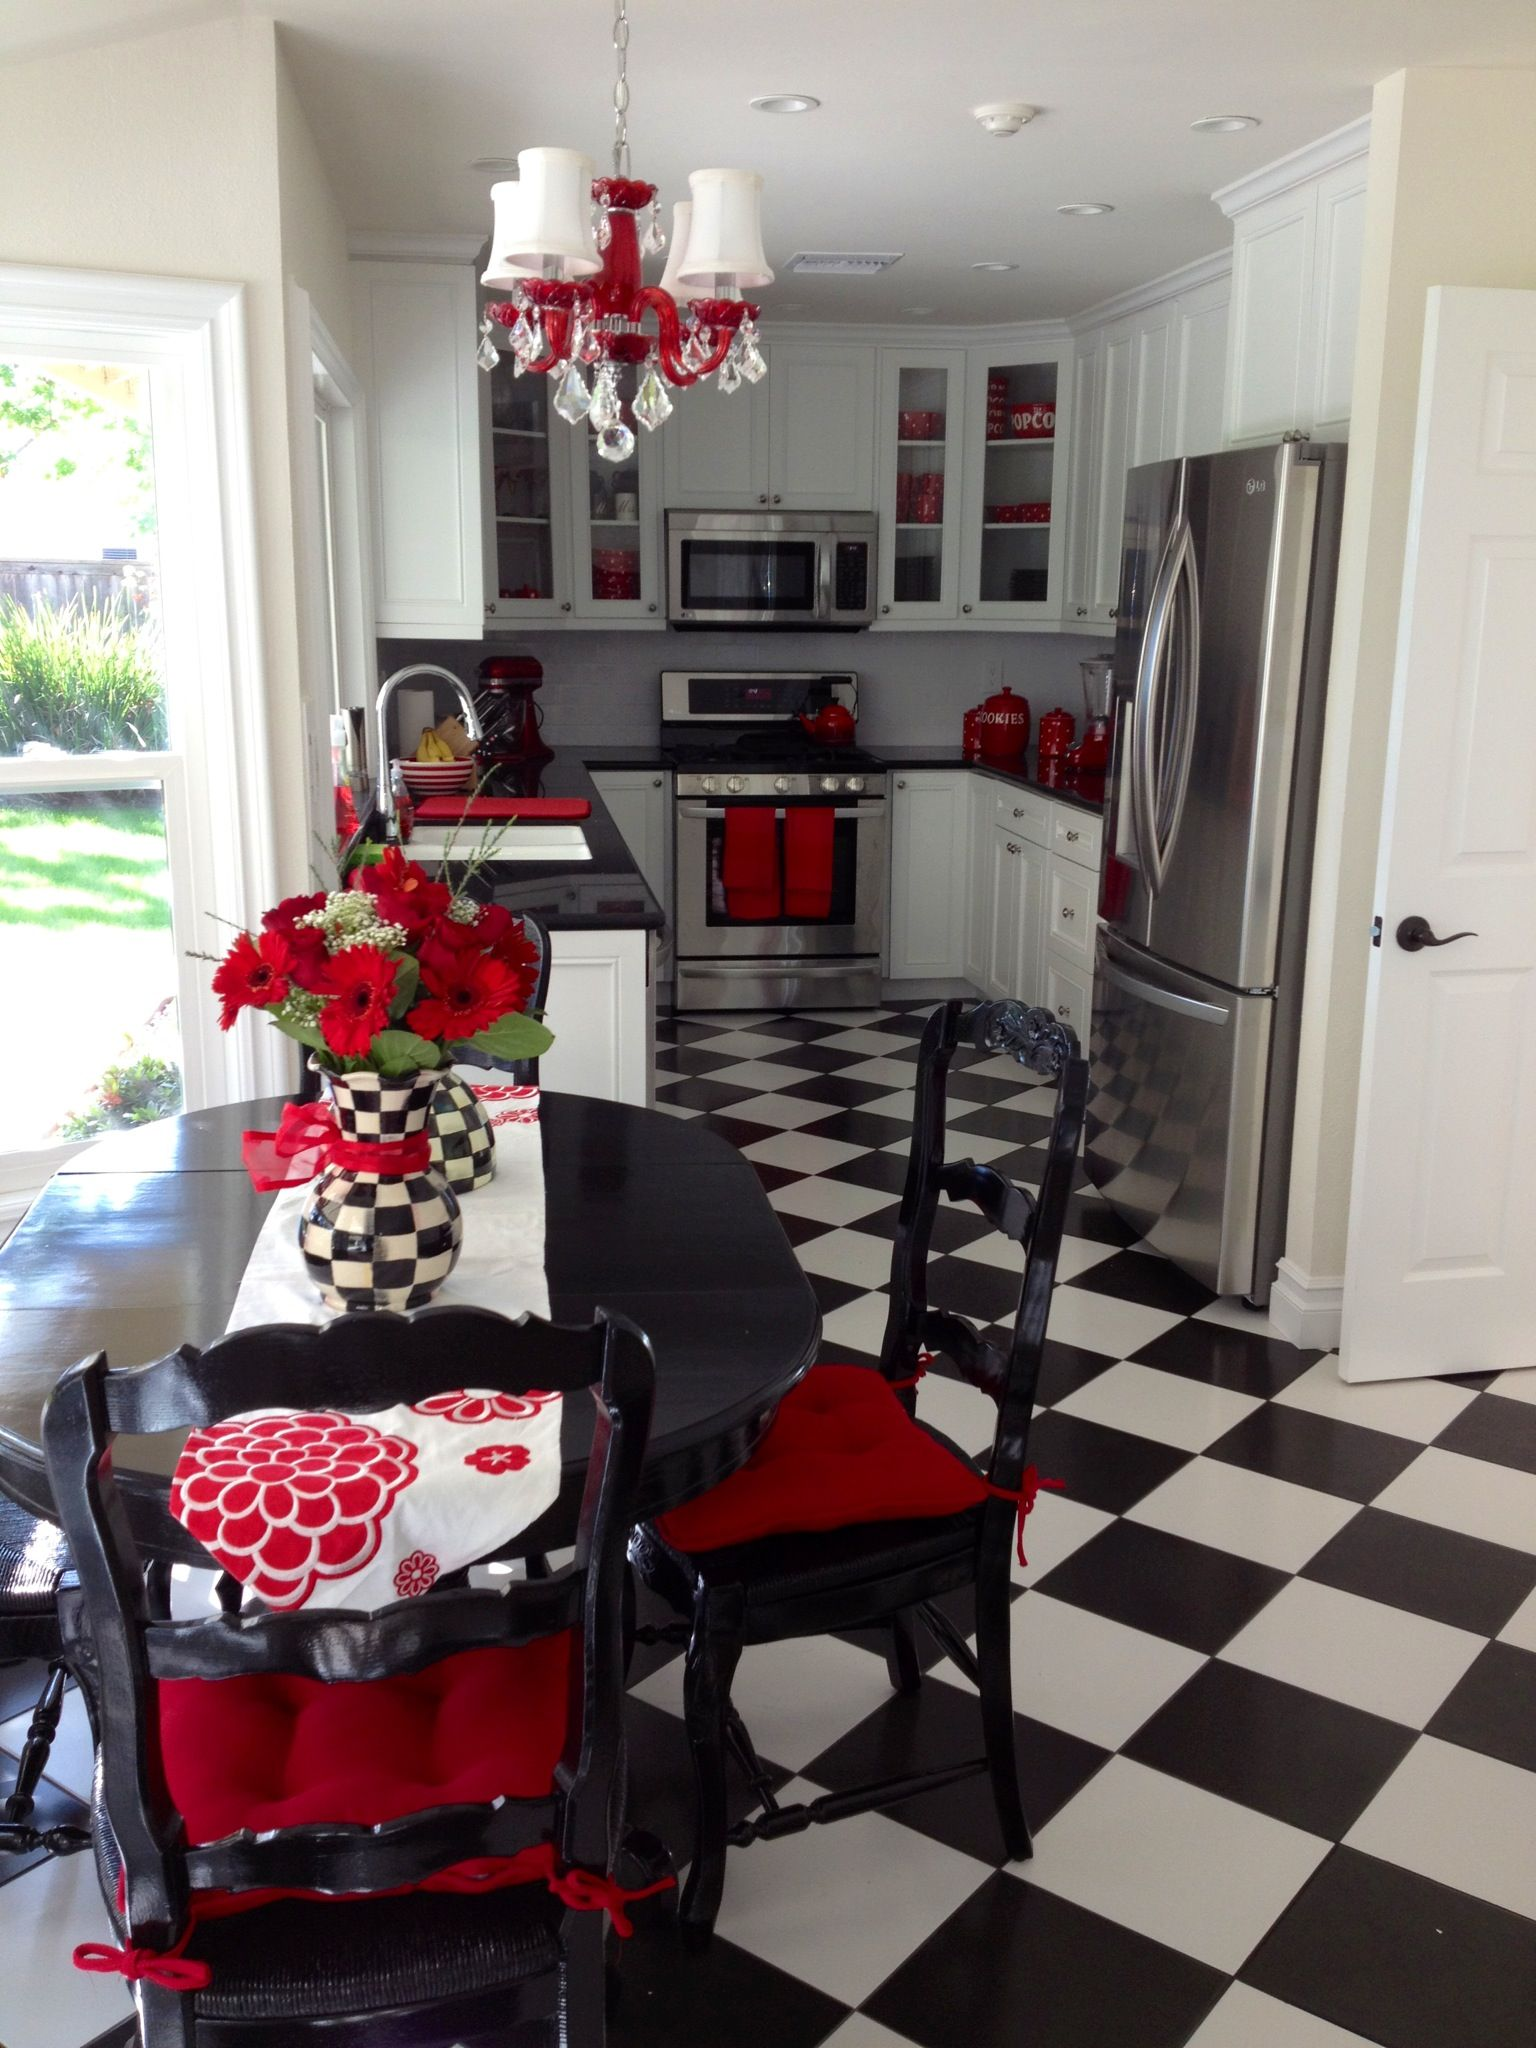 My Fun And Unique Black And White Kitchen With Red Accents And A Checkerboard Floor I M So In Love Red Kitchen Decor Black White Kitchen Red And White Kitchen